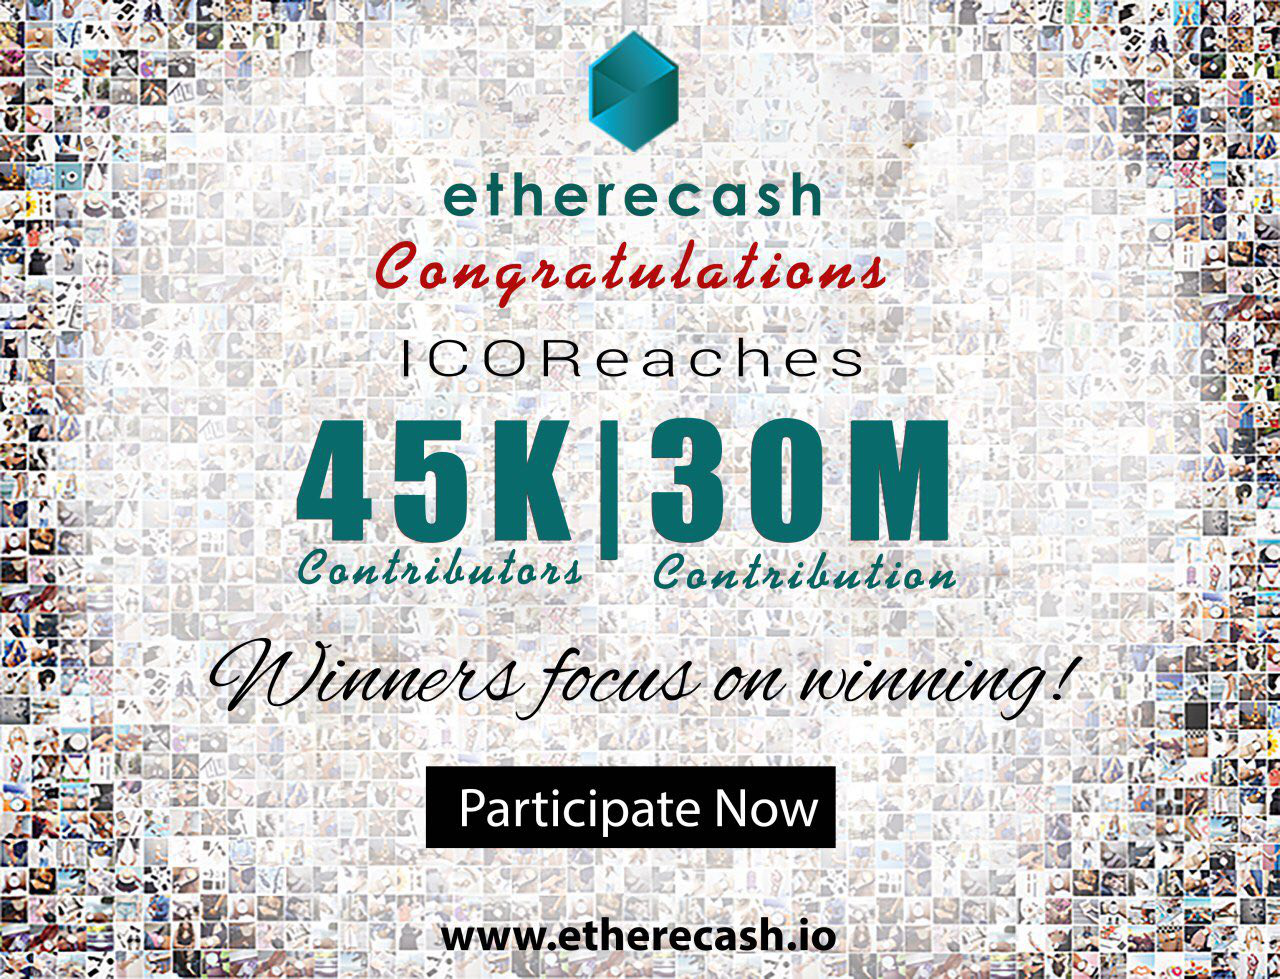 Ethercash-Press-Release